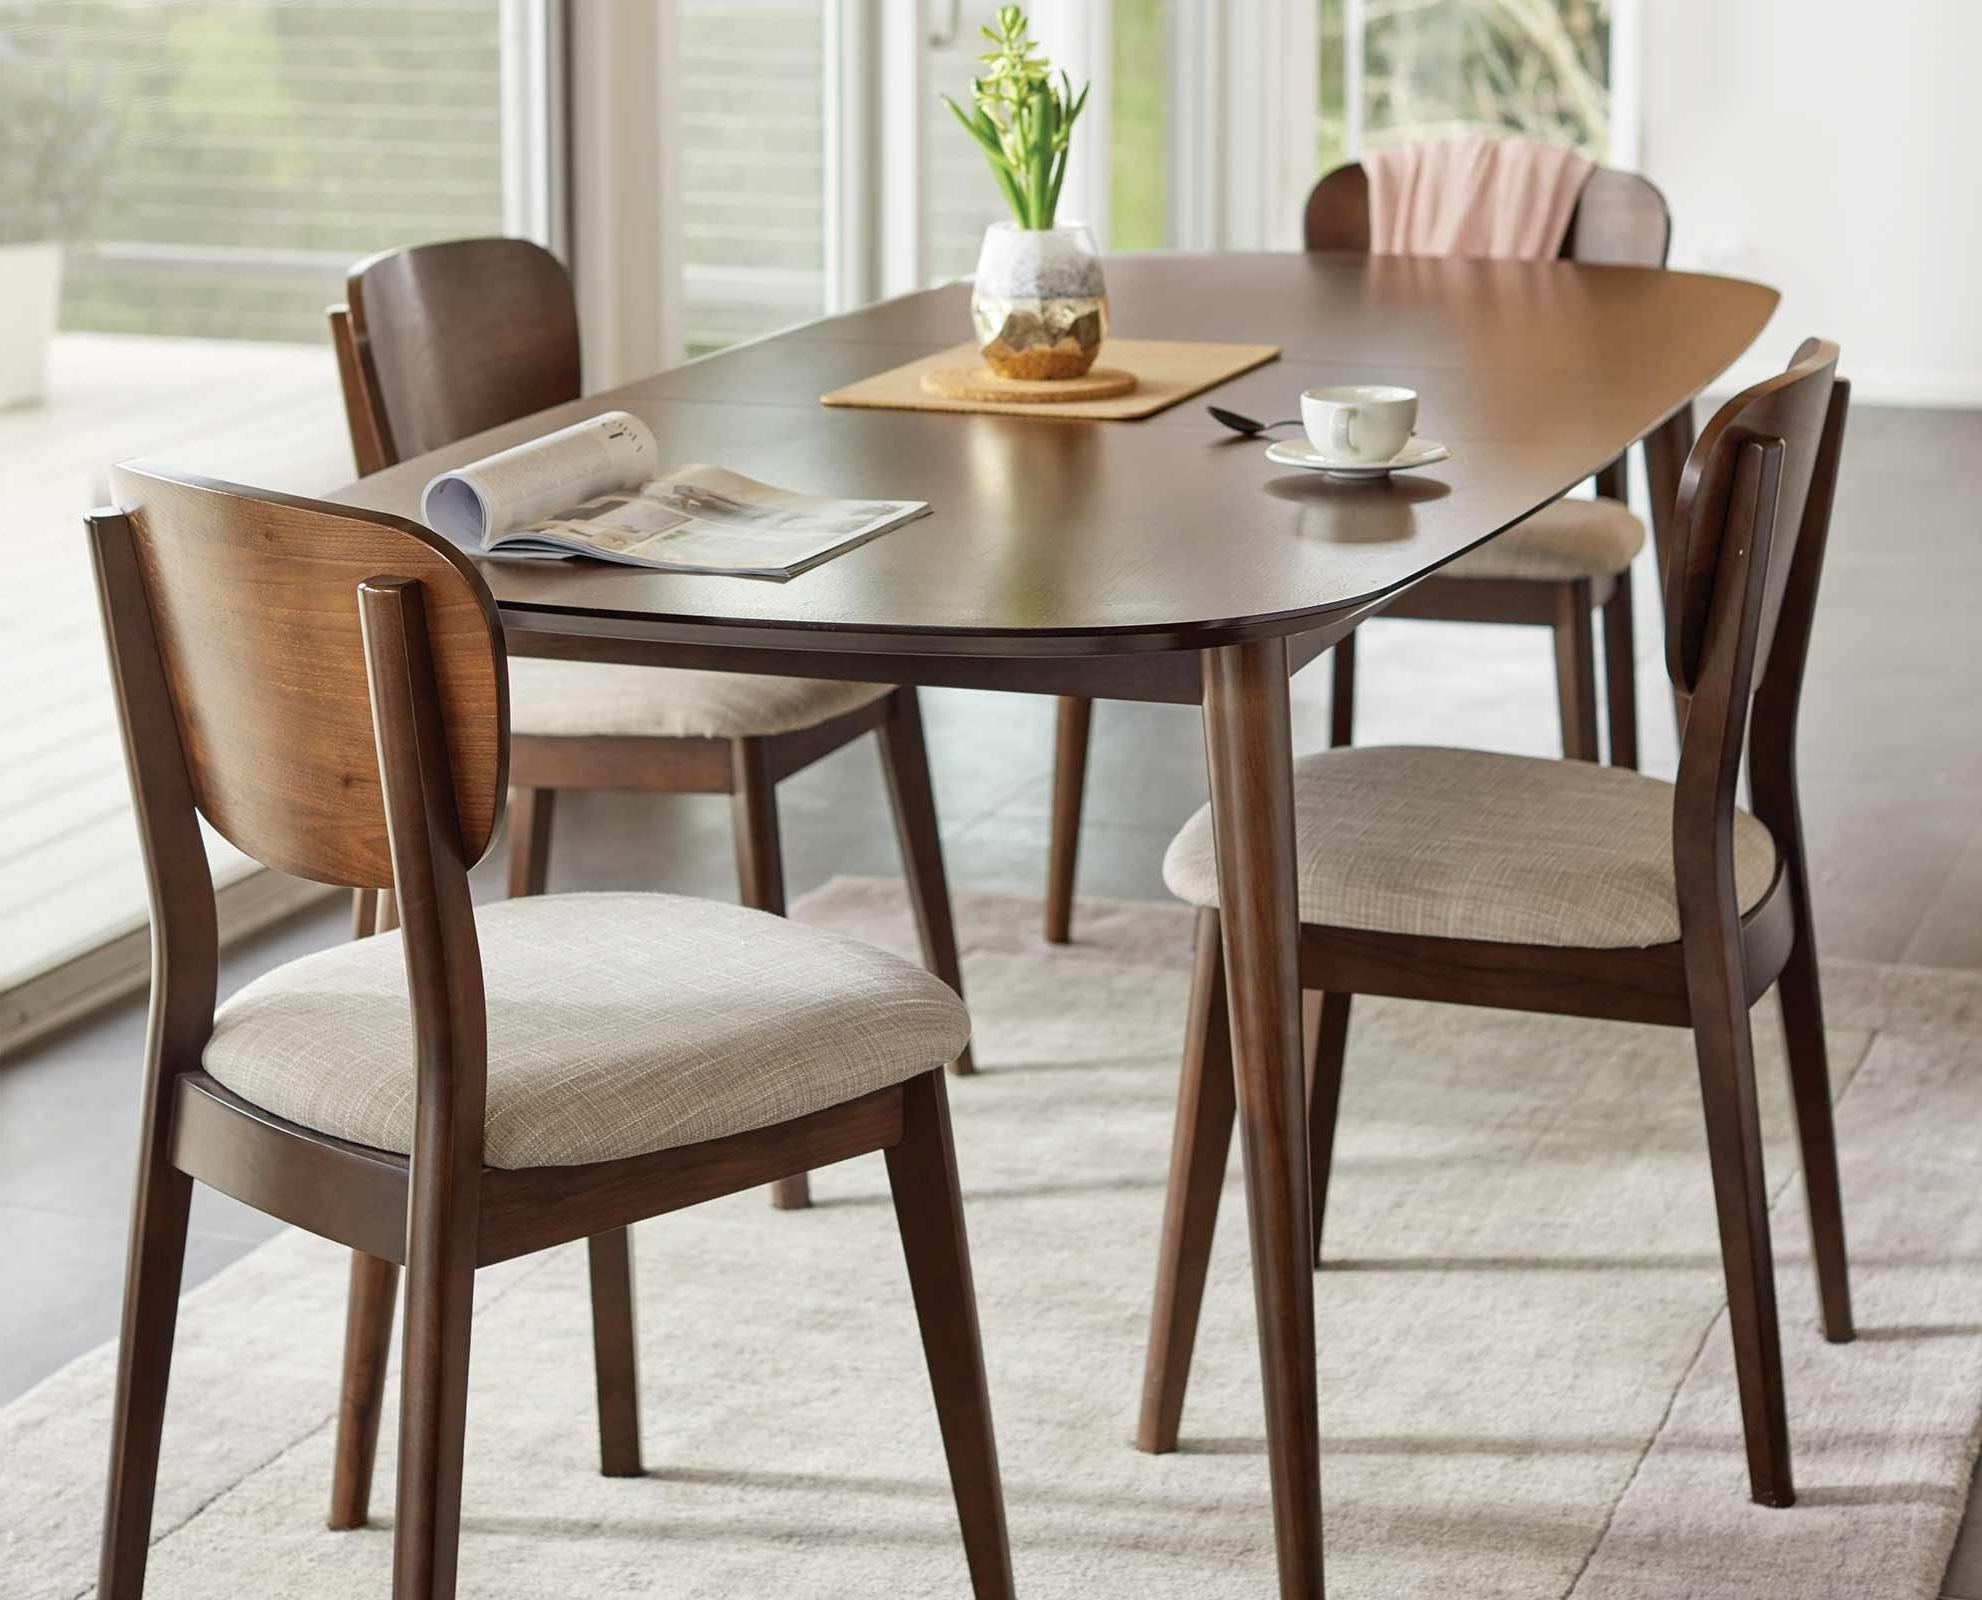 Jaxon Grey 5 Piece Round Extension Dining Sets With Wood Chairs Within Popular Dinex Alfa Extension Dining Table New Jaxon Extension Rectangle (View 17 of 25)